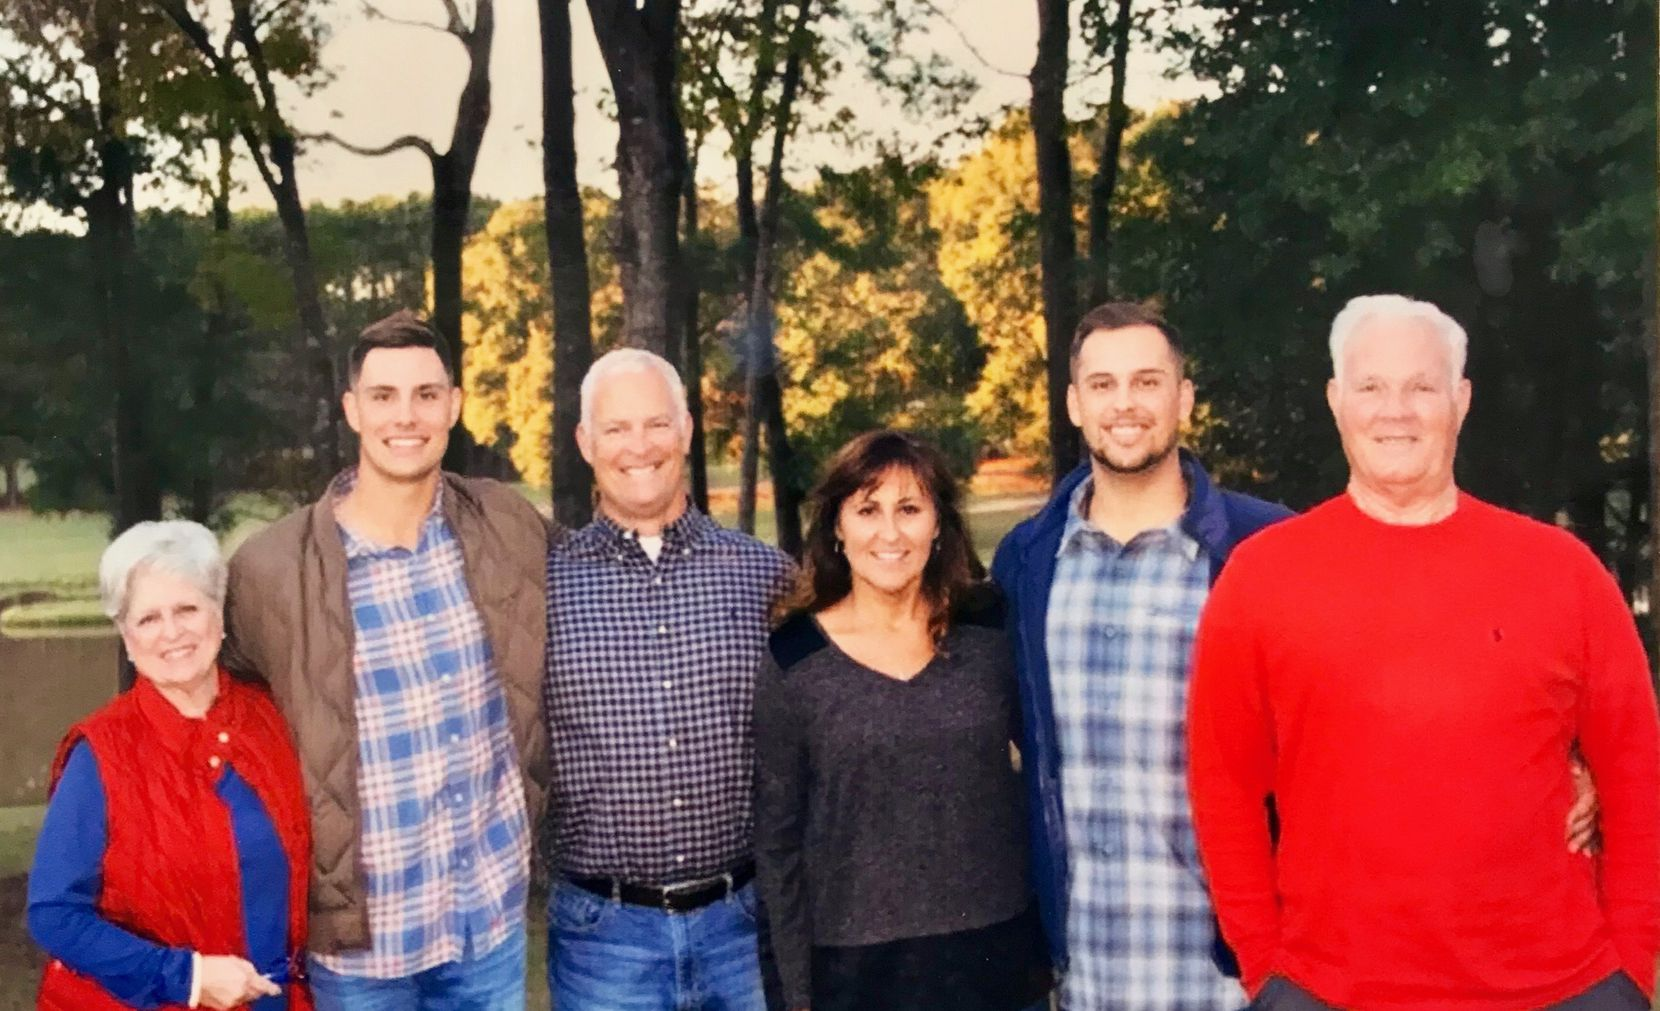 """The family of Texas Rangers first baseman Nate Lowe during Thanksgiving 2018. From left to right: Grandmother Annette Lowe, brother Josh Lowe, father David Lowe, mother Wendy Lowe, Nate Lowe and grandfather Edward """"Pap"""" Lowe. (Courtesy of Lowe family)"""